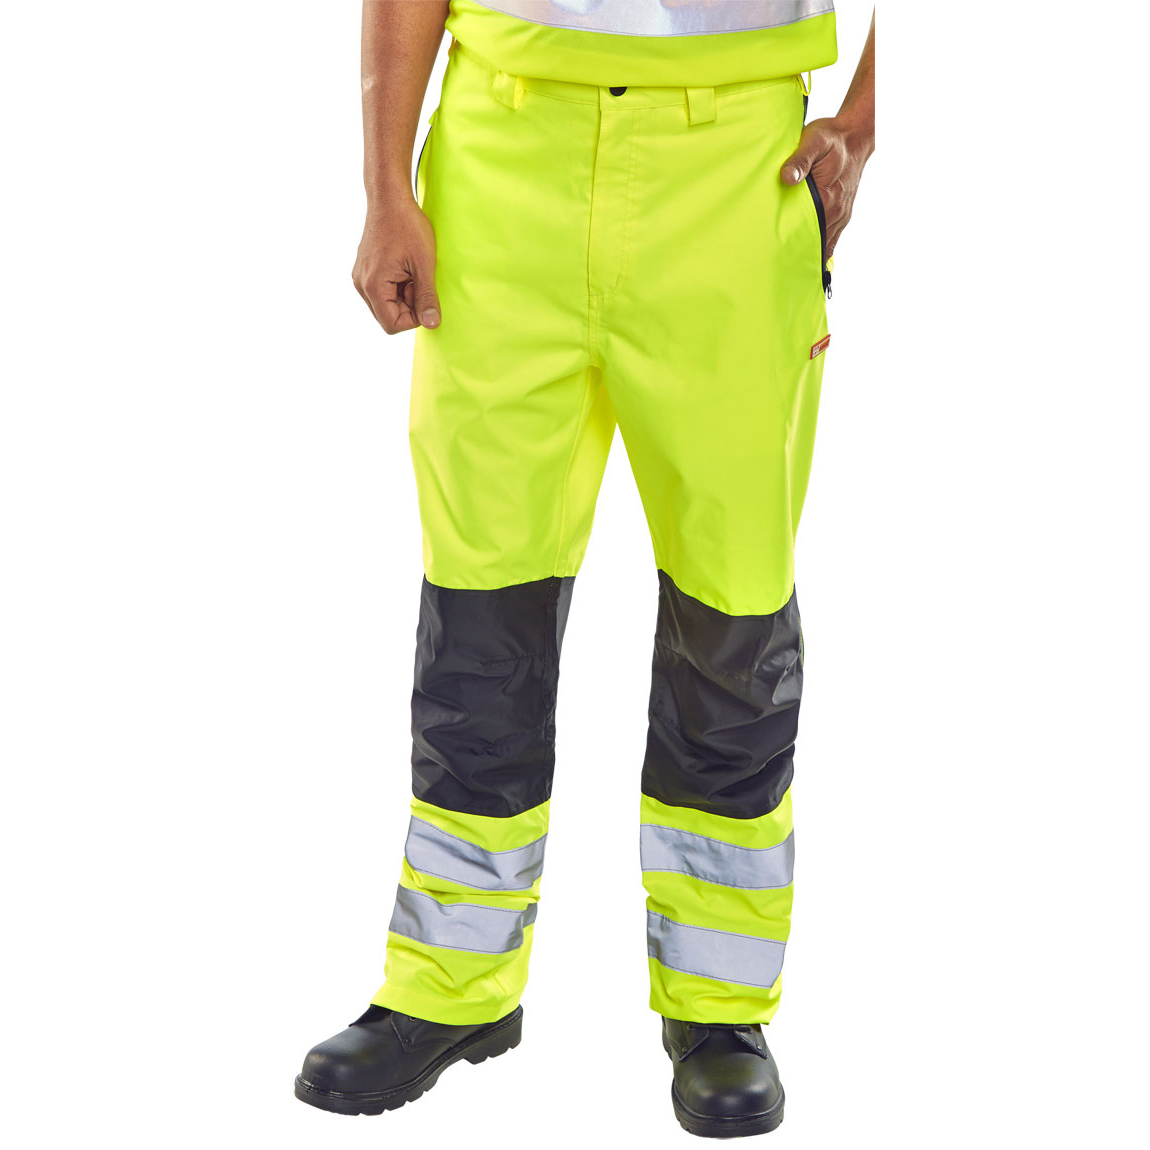 Ladies B-Seen Contrast Trousers Hi-Vis Waterproof 3XL Saturn Yellow Ref BD85SY3XL *Up to 3 Day Leadtime*